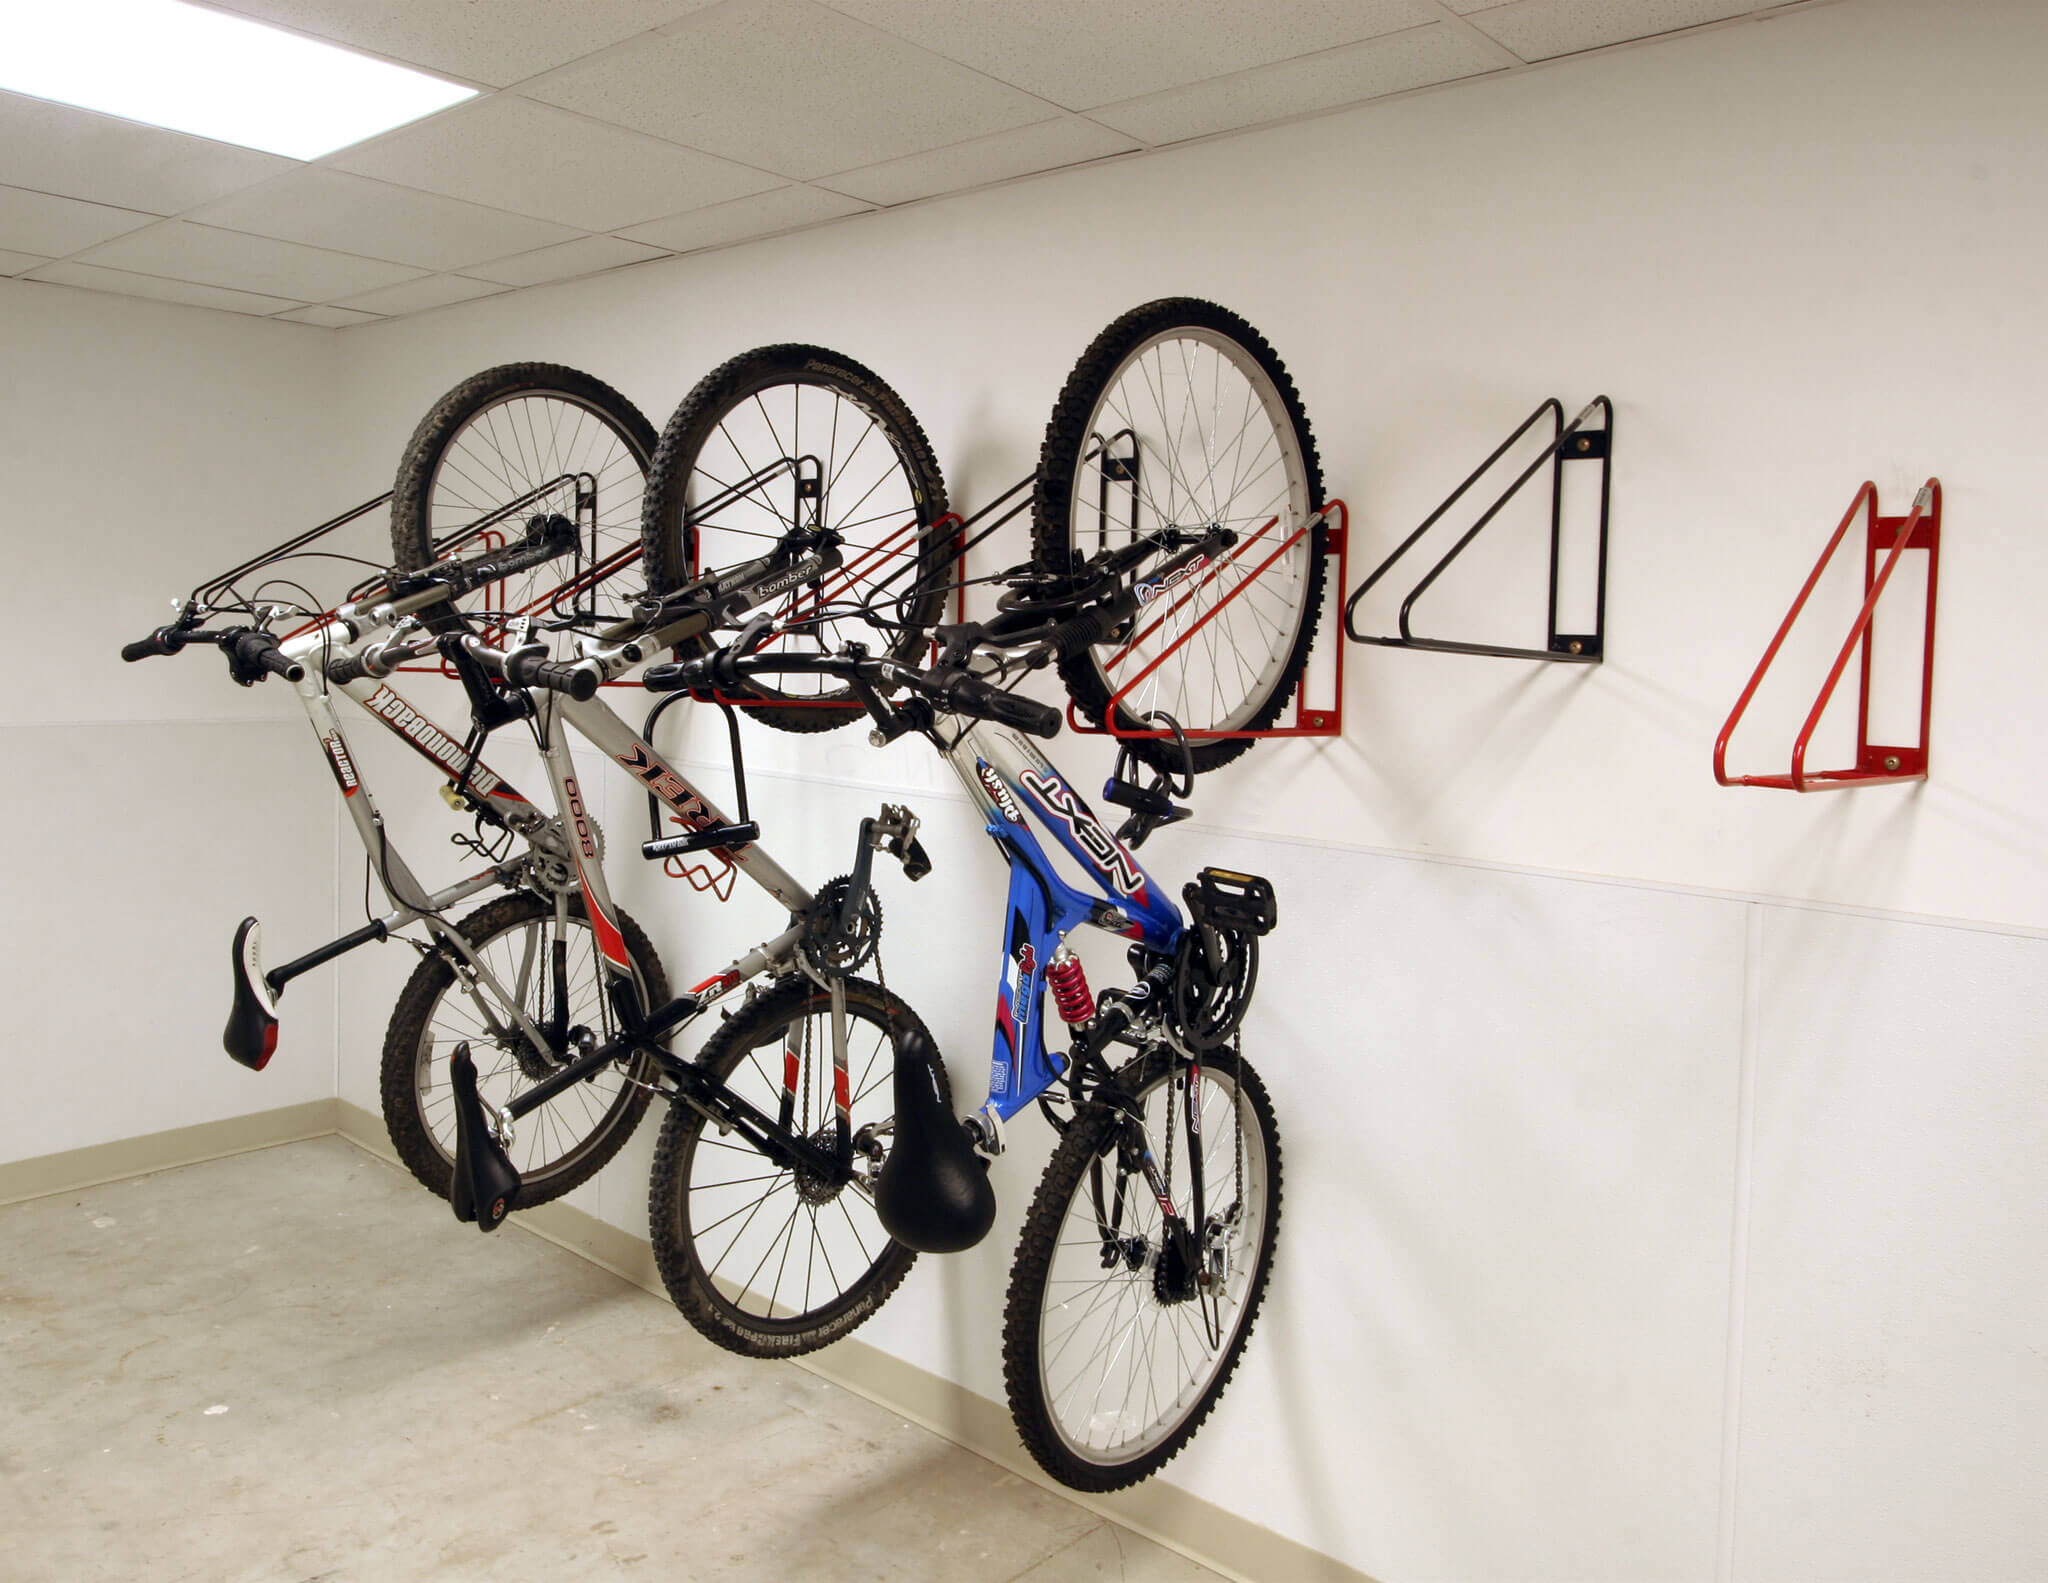 rack ceiling rad blog heavy entry hoist storage garage lift bike lime review duty urban